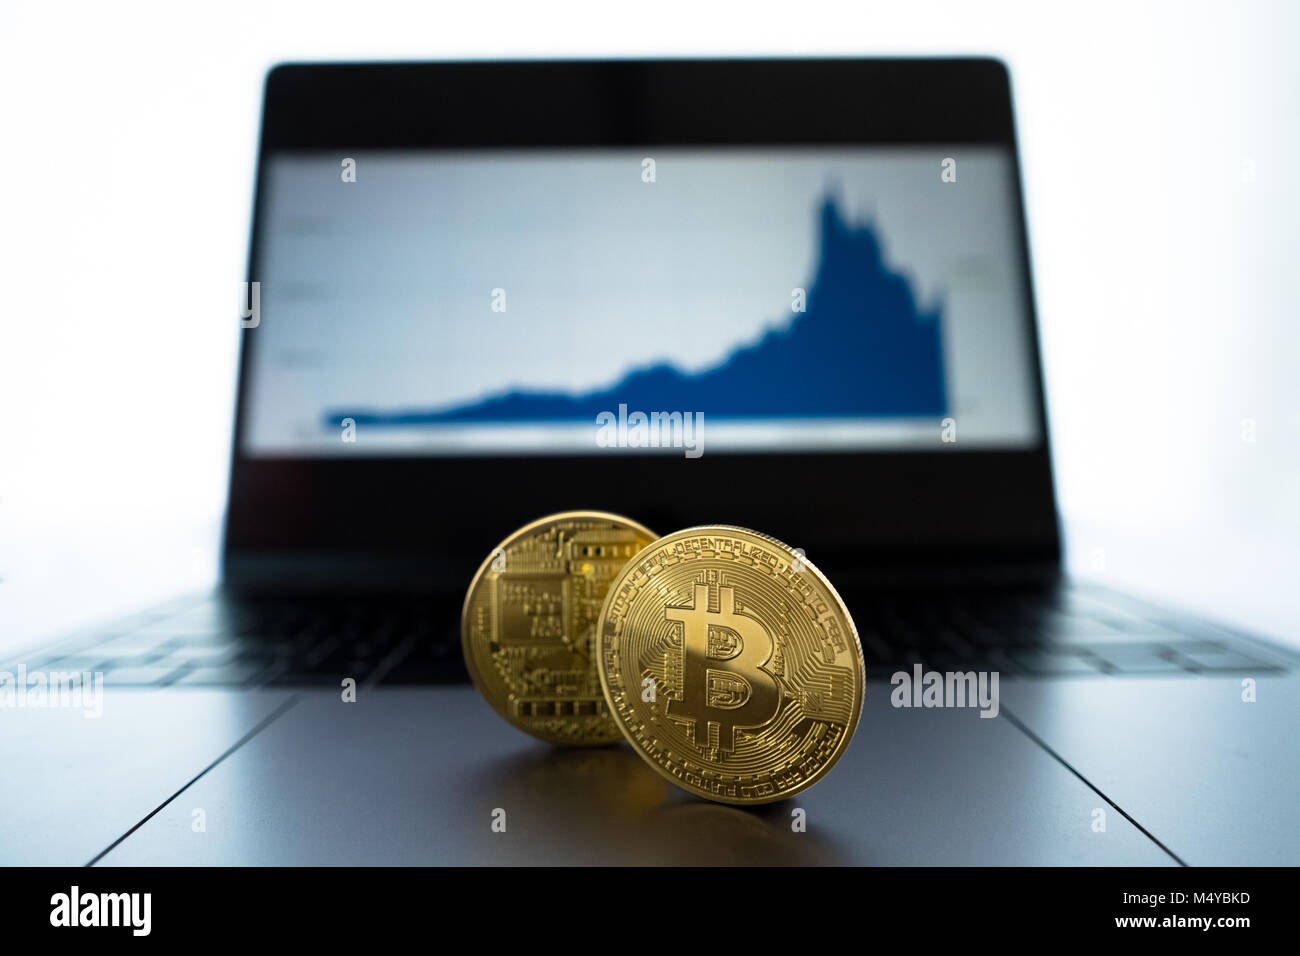 Physical gold Bitcoin with shallow depth of field sitting in front of laptop showing area chart of historic Bitcoin - Stock Image